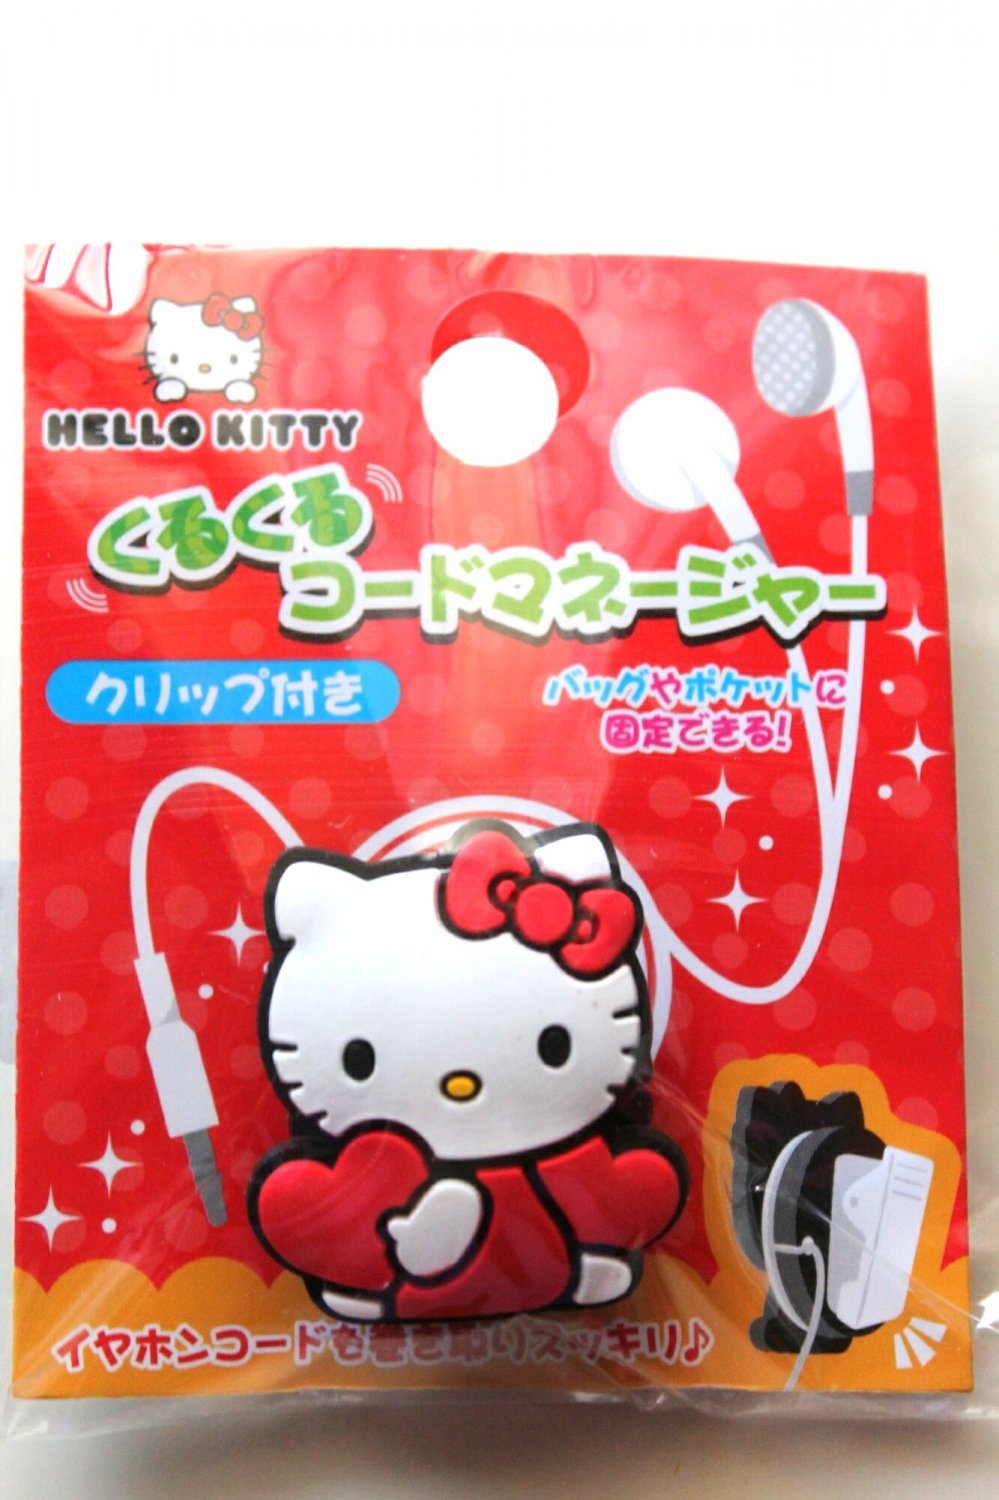 Cute Hello Kitty Earphone Cord Winder-sanrio stuff